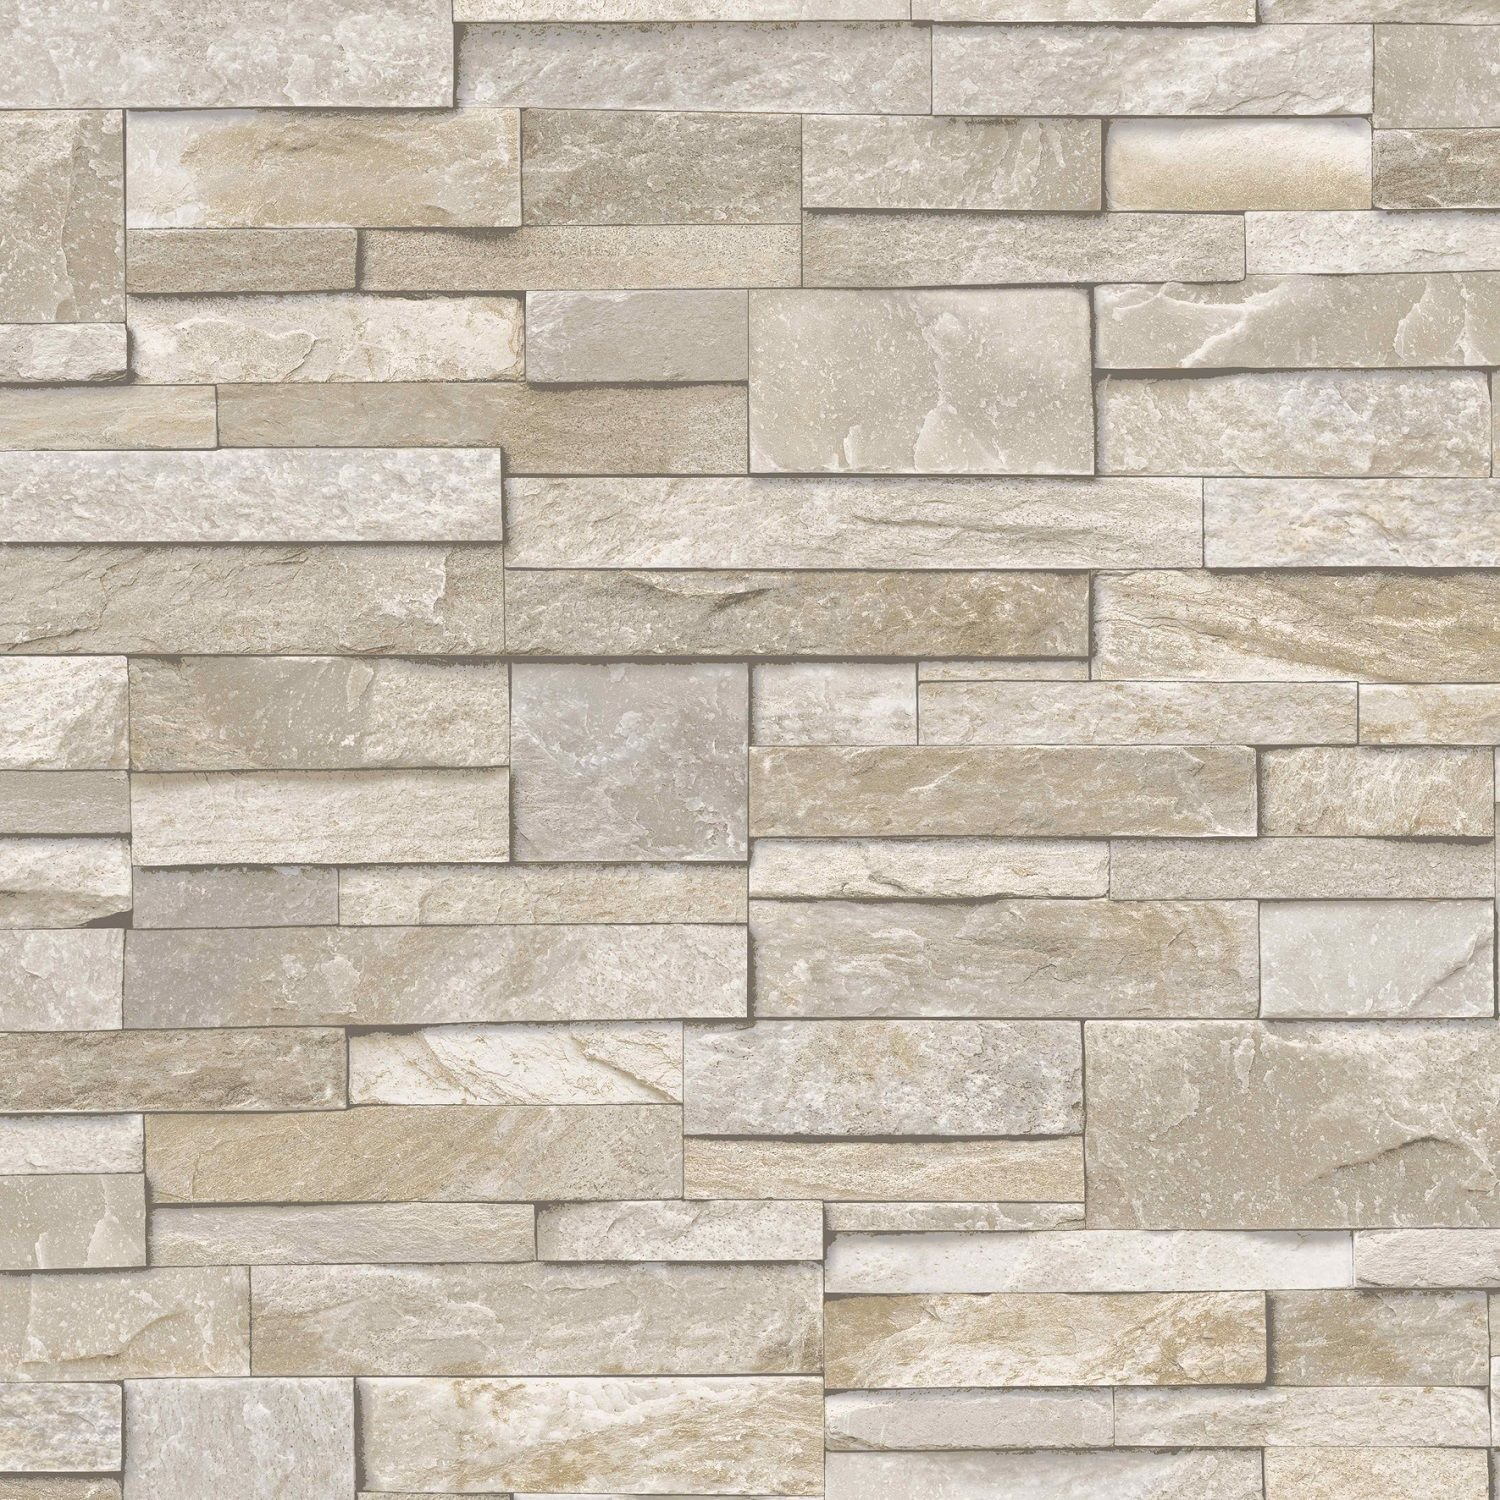 3D Slate Stone Brick Effect Wallpaper Washable Vinyl Natural Grey Grandeco EXPSFD013114